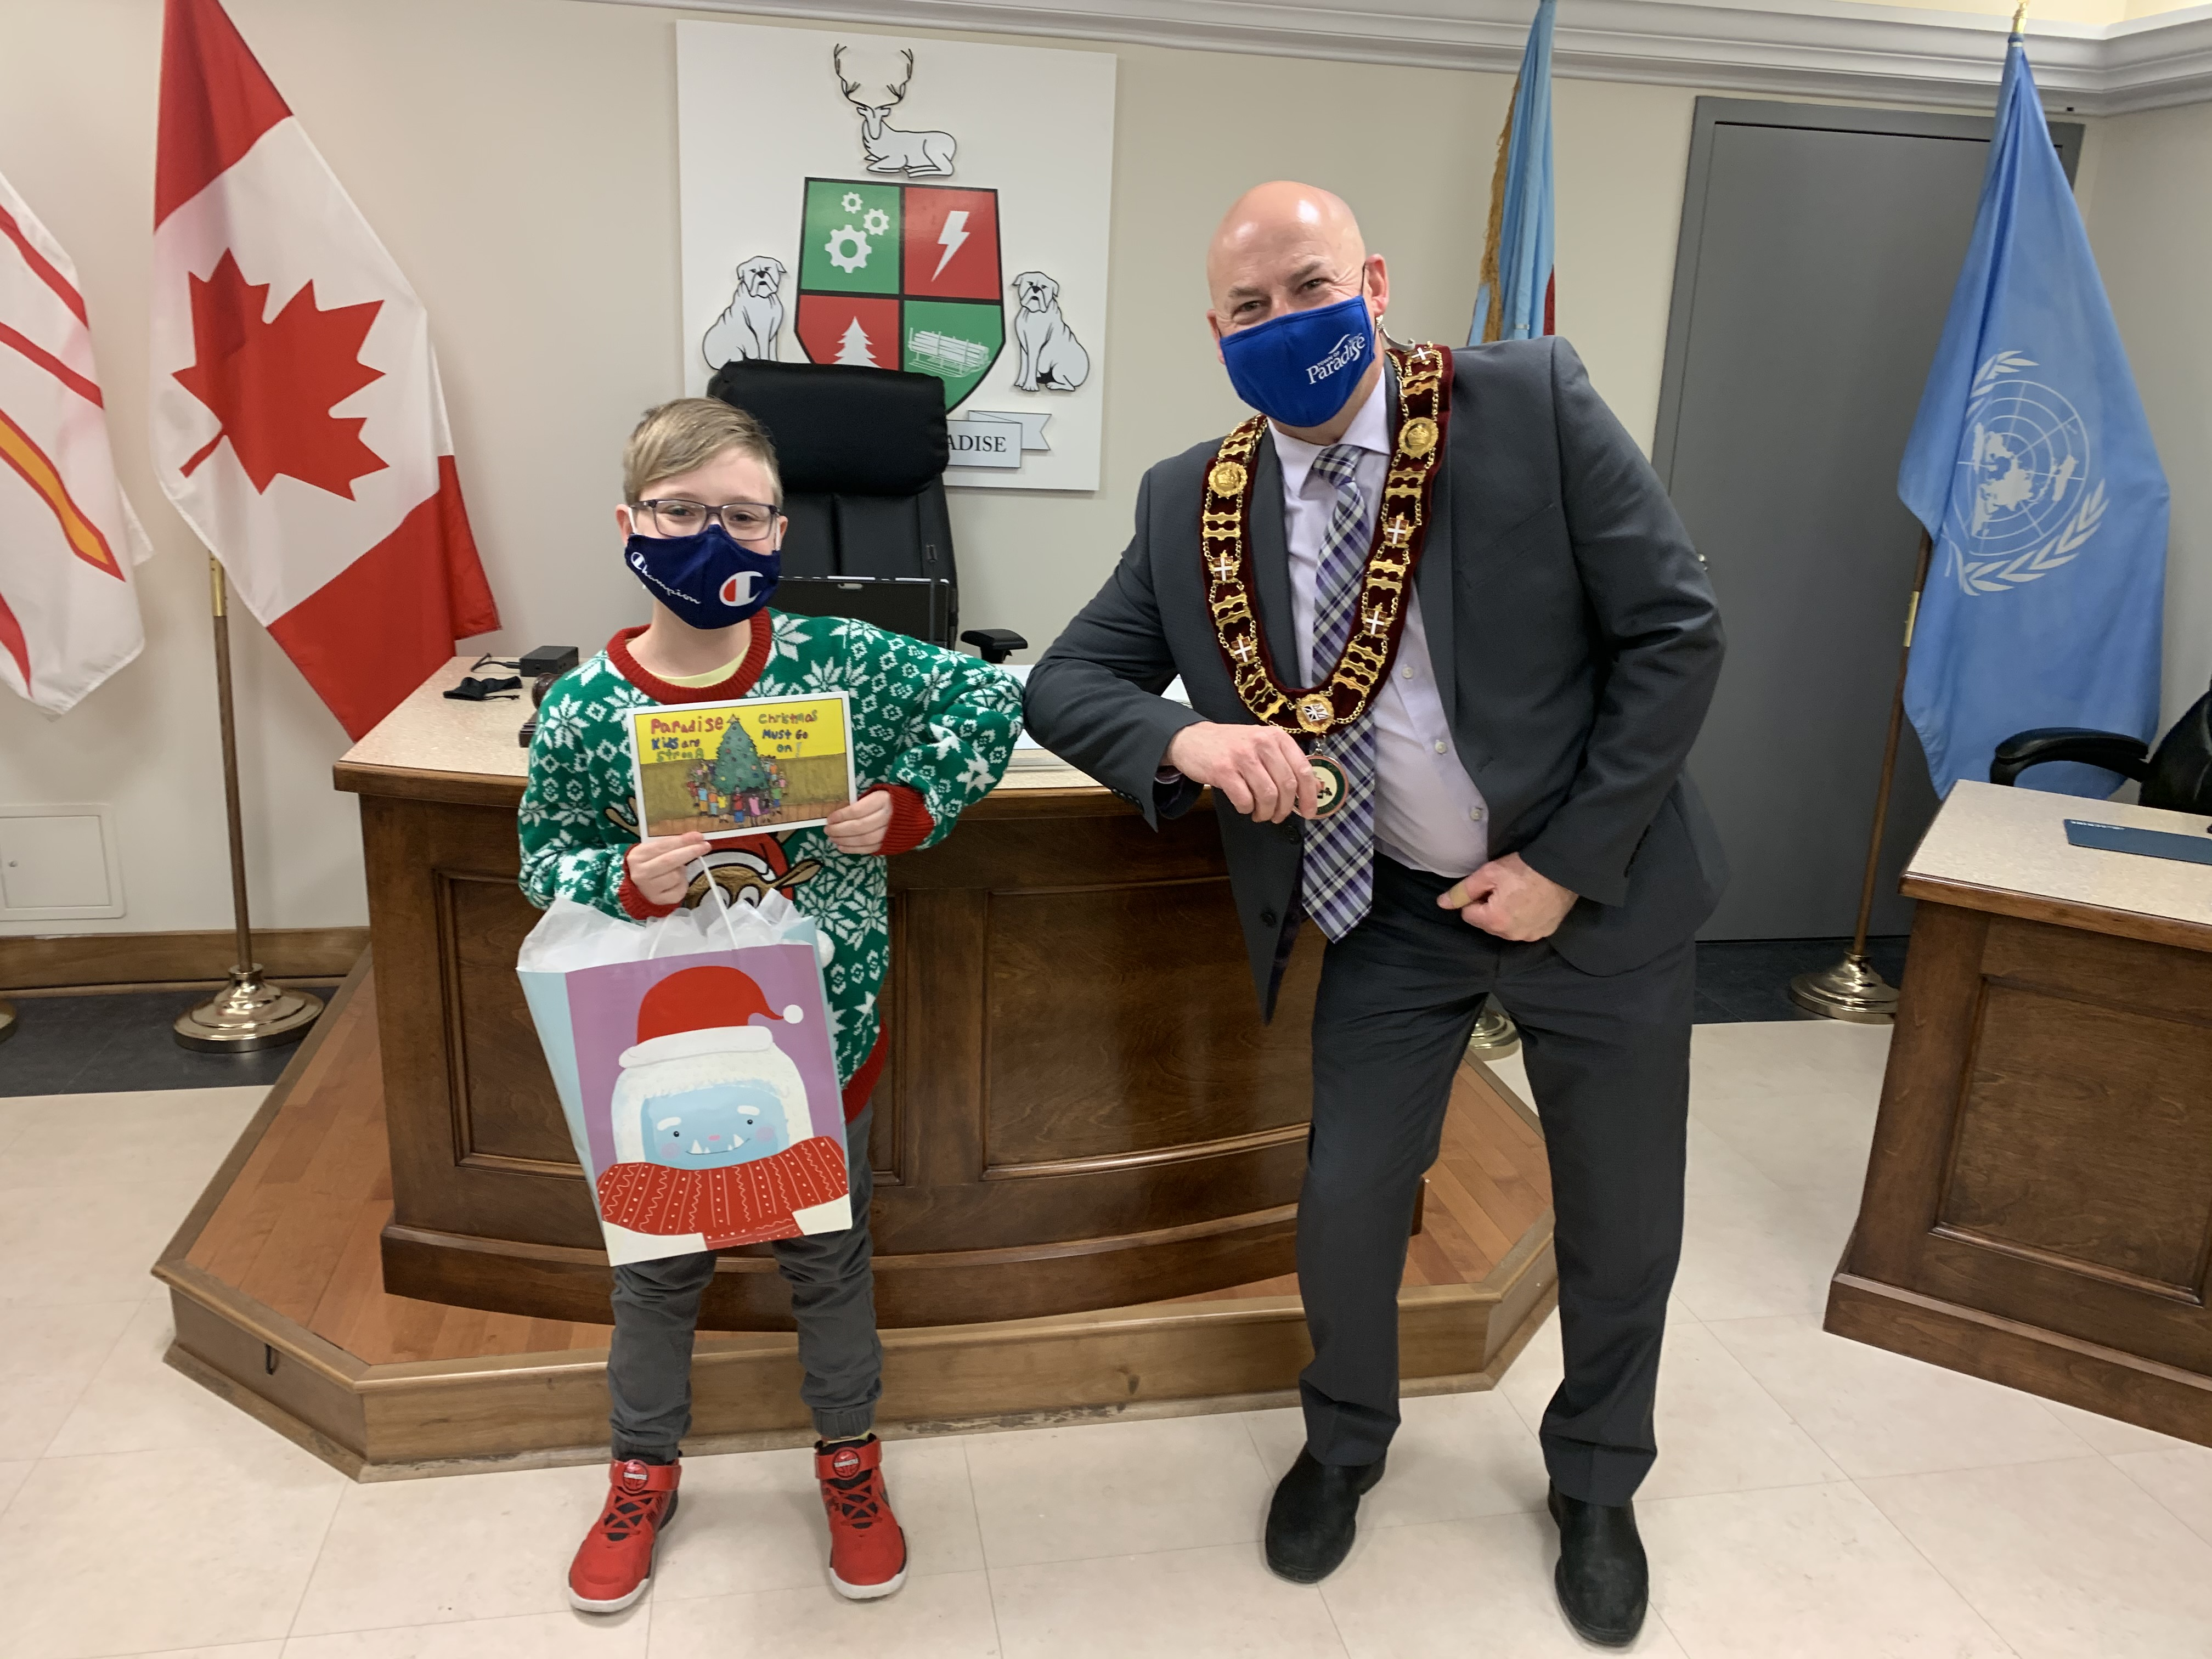 Paradise Mayor Dan Bobbett presenting Andy Walker, a Grade 5 Student from Paradise Elementary, his prize for designing the Town's 2020 Christmas Card